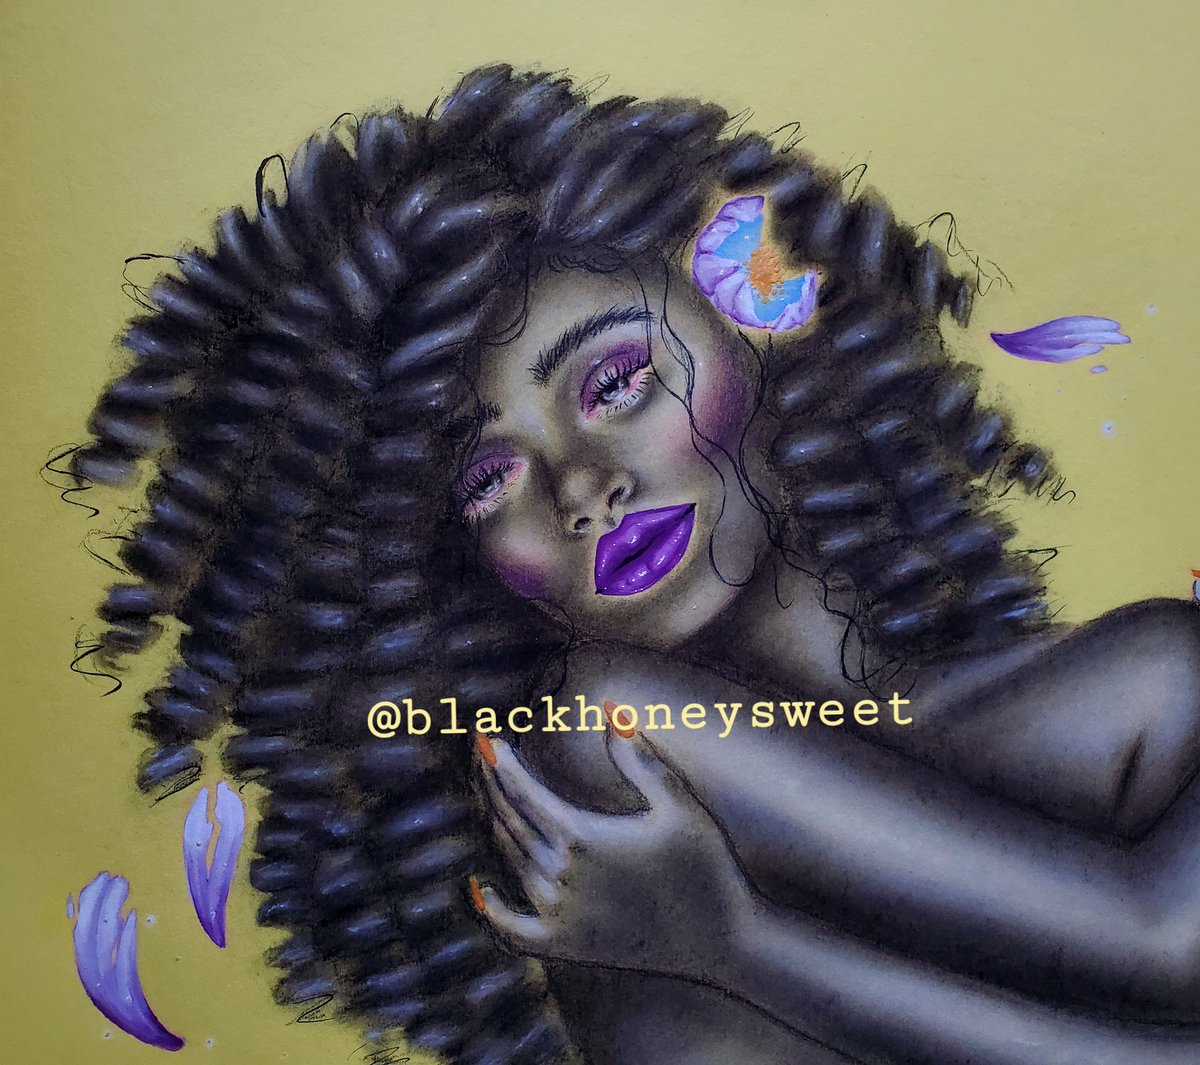 #drawingwhileblack  Heyo! My name is Meelah and I'm a NYC based artist. My art consists of female figures based on my mental state and life experiences.  #traditionalart #ArtistOnTwitter https://t.co/evrQyYmZ0B